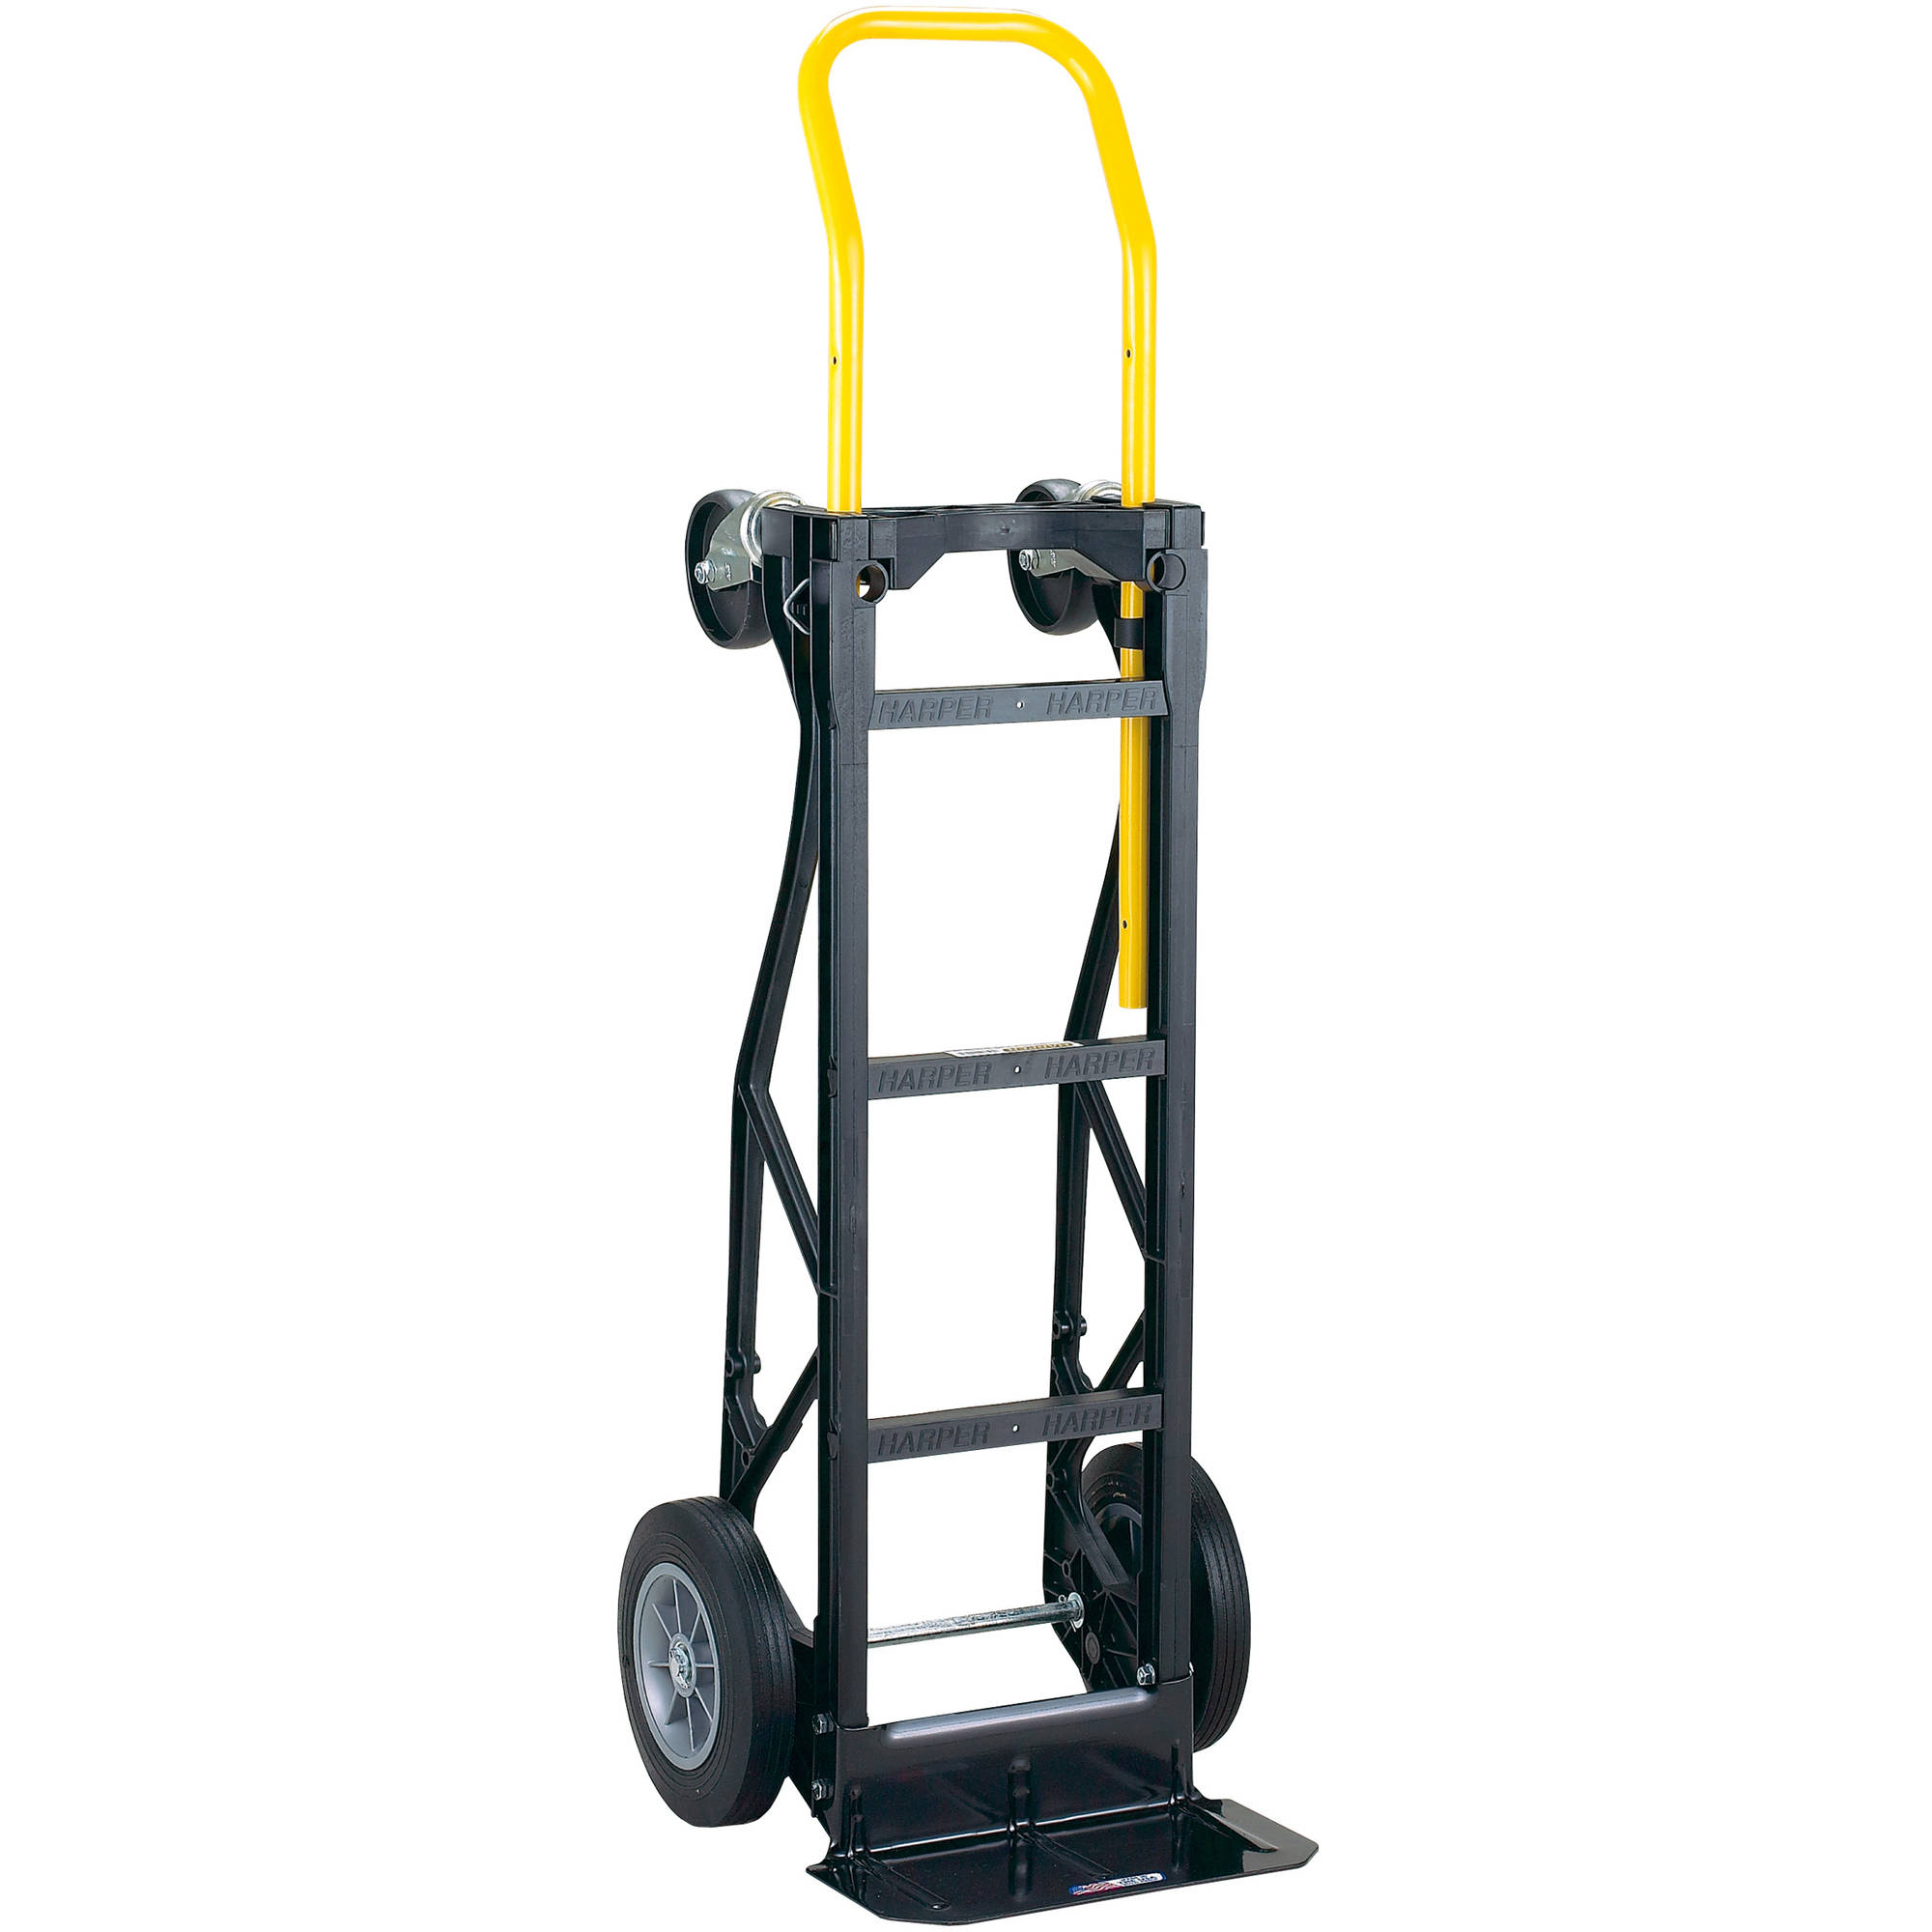 "Harper Trucks 700 lb Capacity Glass Filled Nylon Convertible Hand Truck and Dolly with 10"" Flat-Free Solid Rubber Wheels"